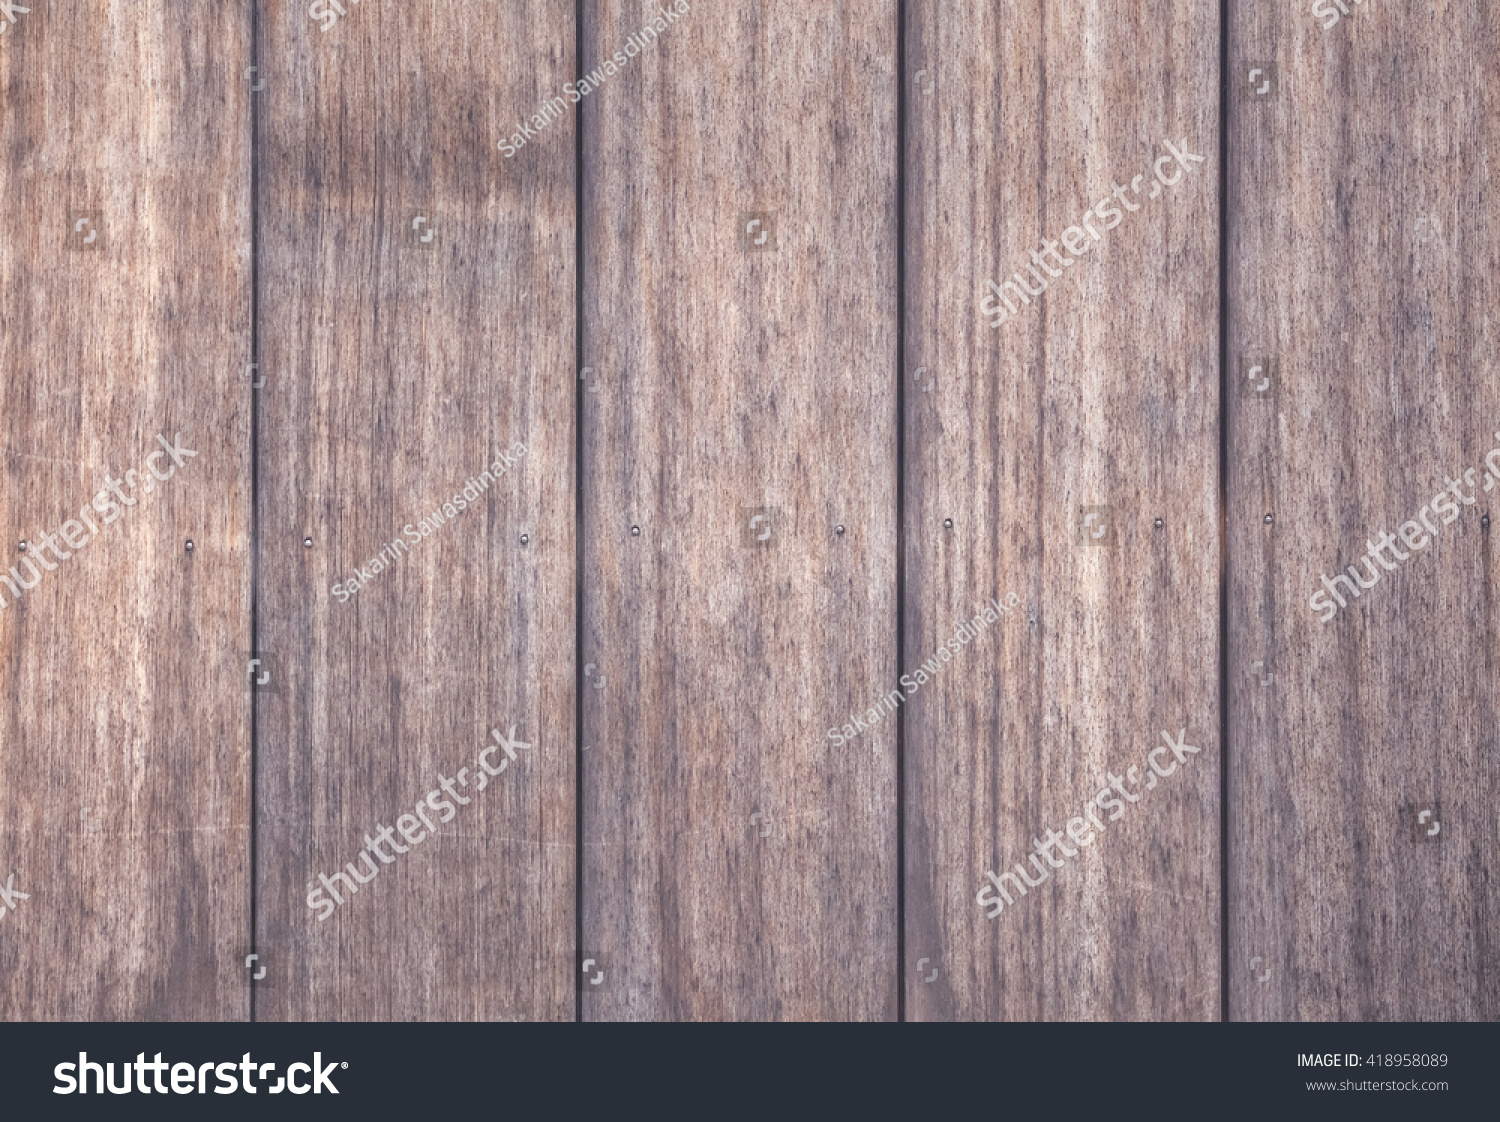 Wood Fence Texture Seamless With Old Vintage Wood Fence Texture And Seamless Background Vintage Wood Fence Texture Seamless Stock Photo edit Now